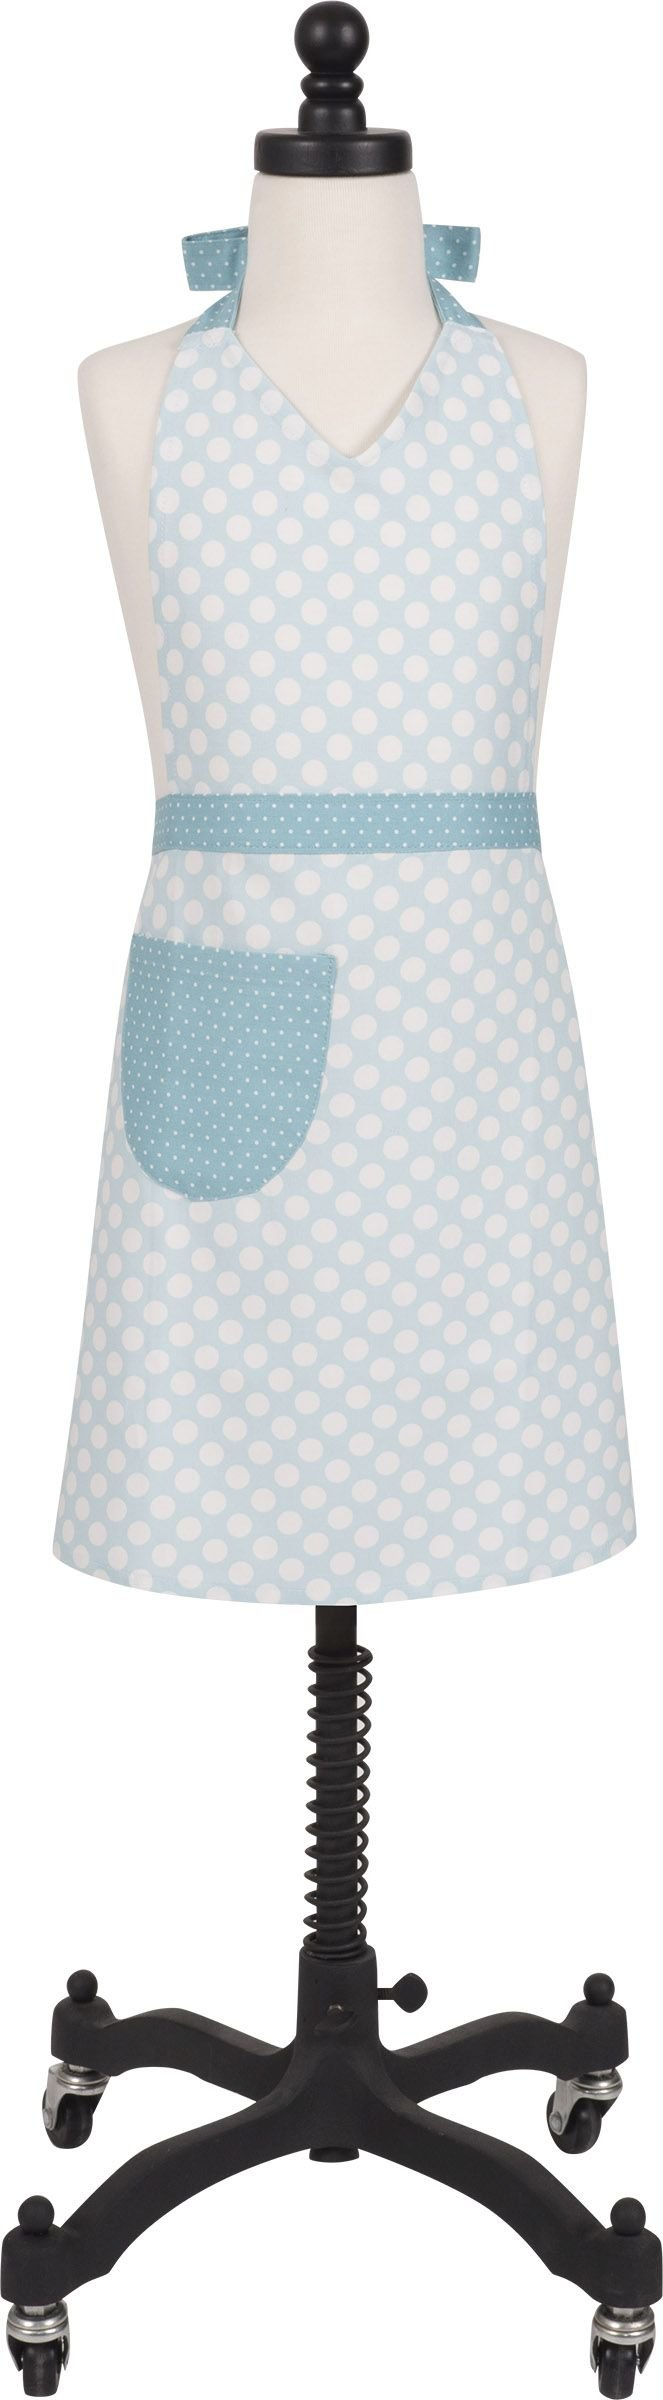 Handstand Kitchen Girl's Pretty Print 100% Cotton Apron with Patch Pocket (Pretty Polka Dots)